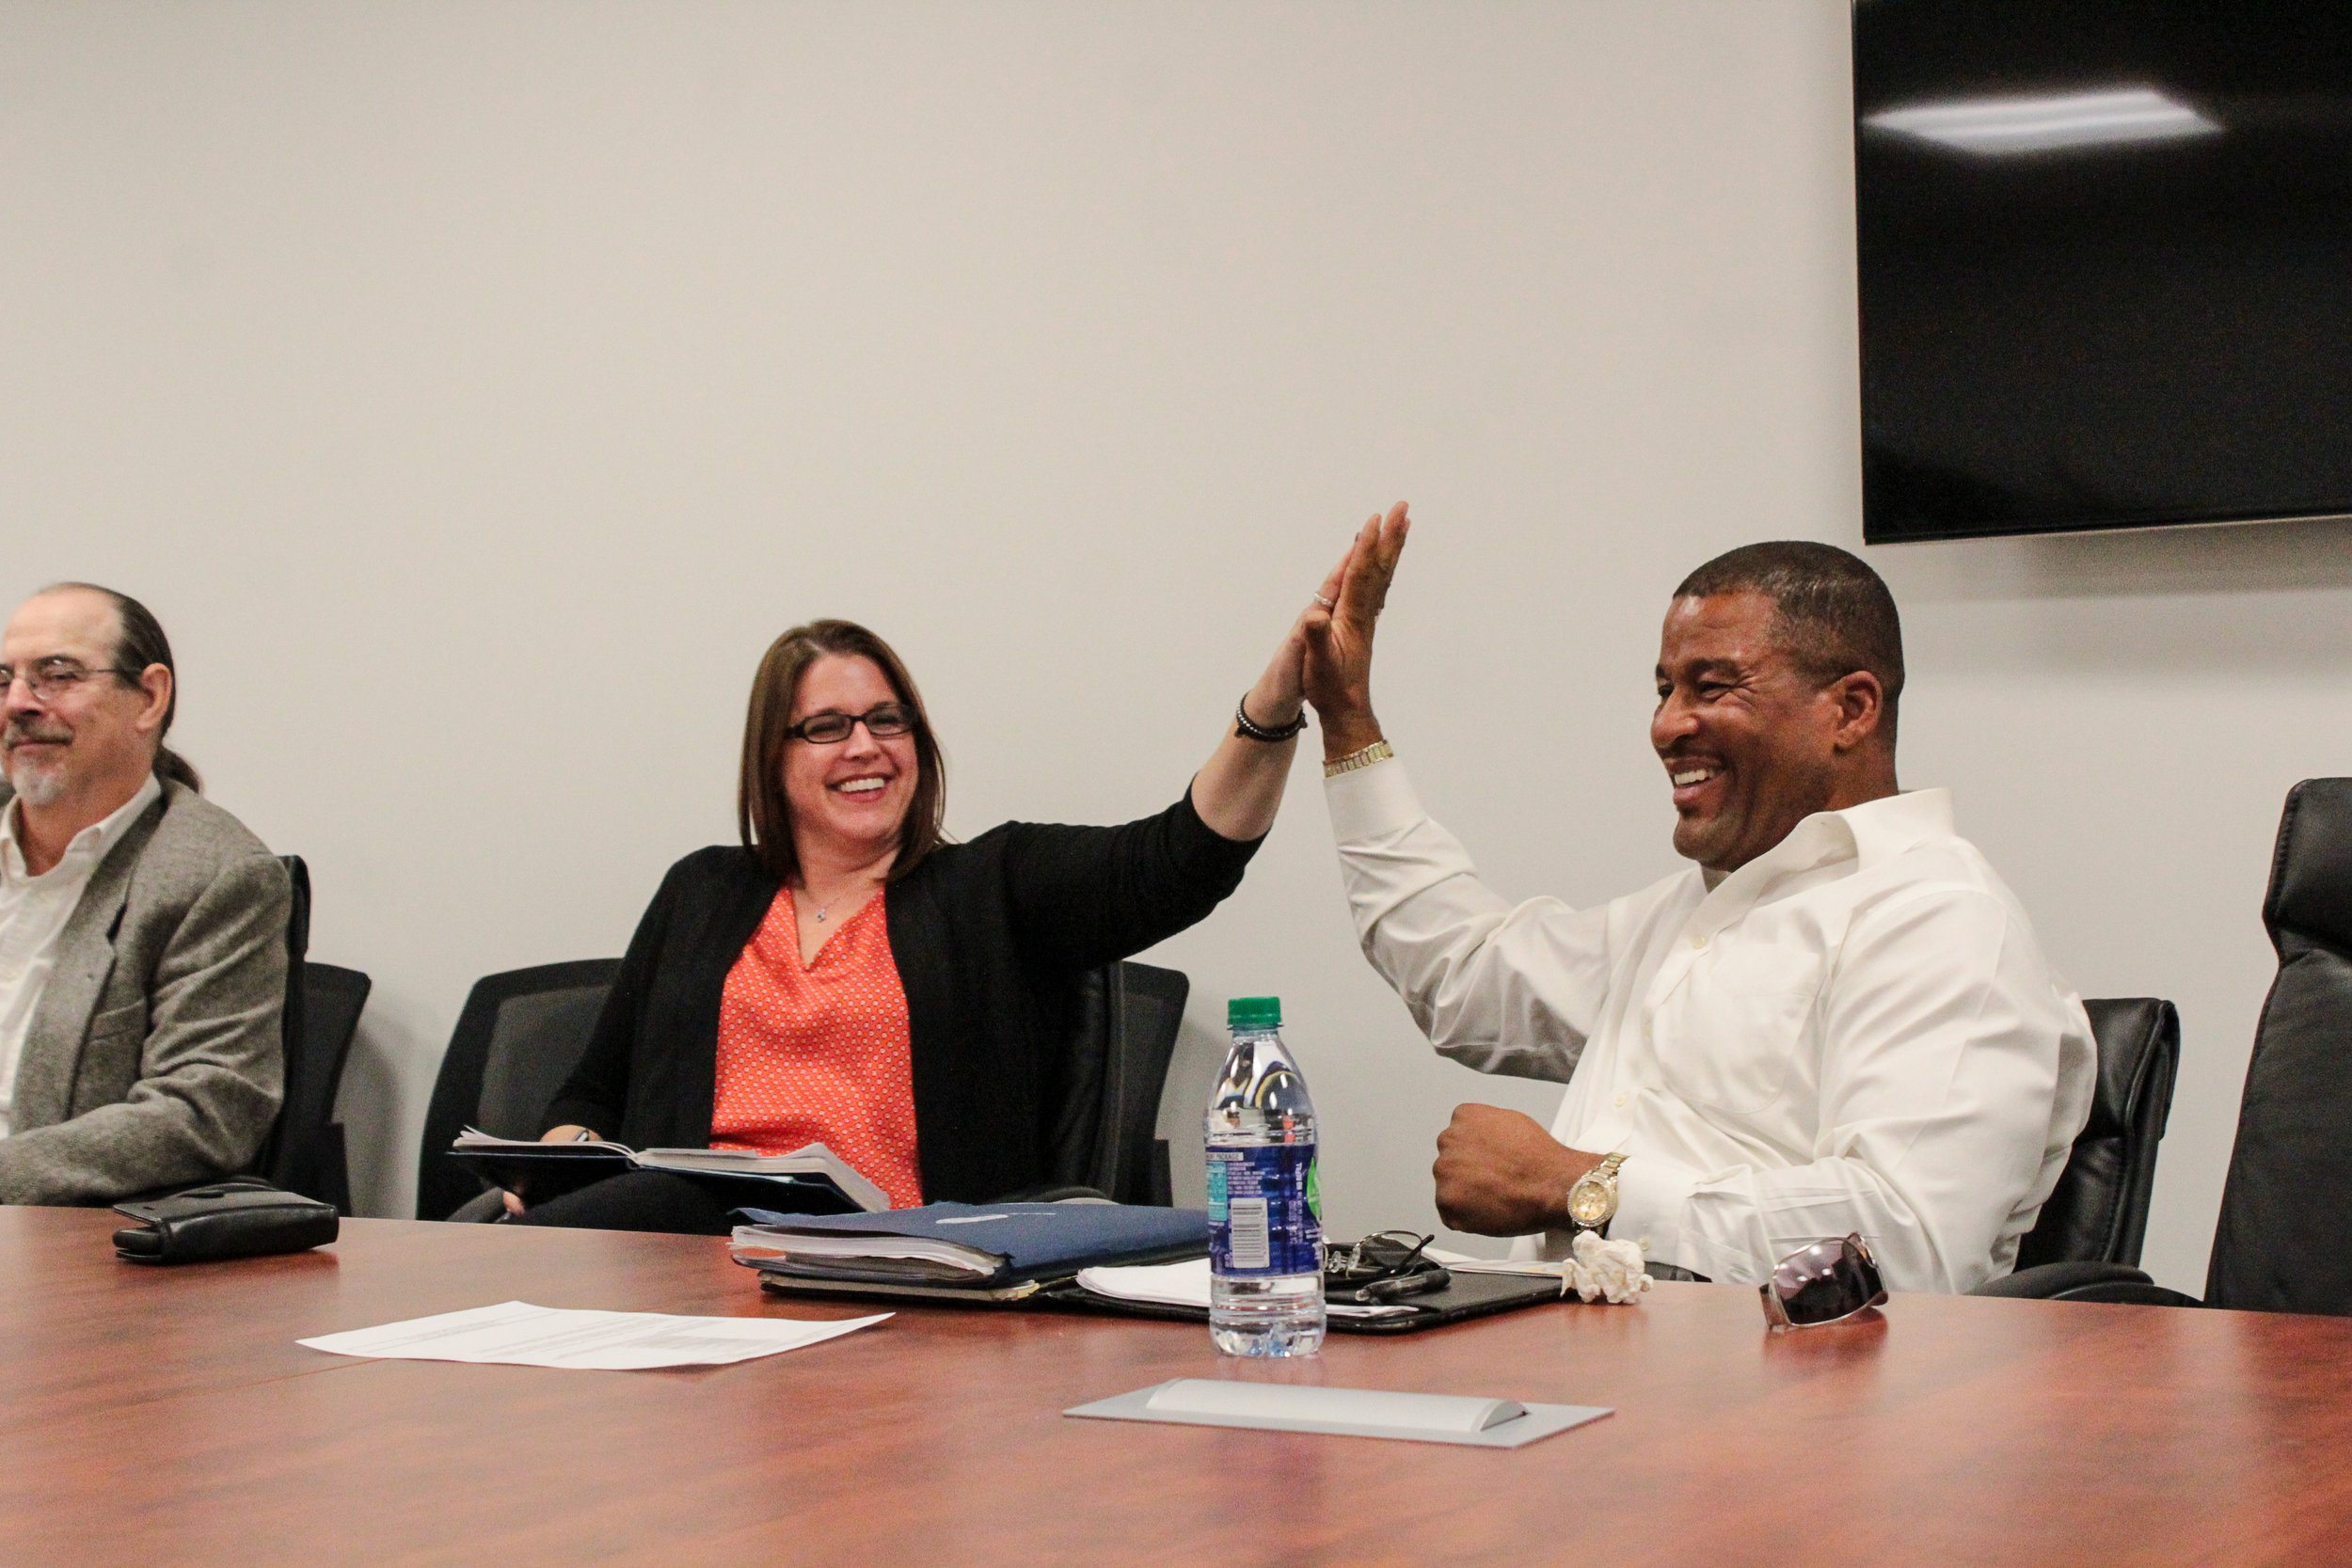 Jennifer Zeunik of the National Police Foundation high-fives Policy Committee member Darius Williamson.